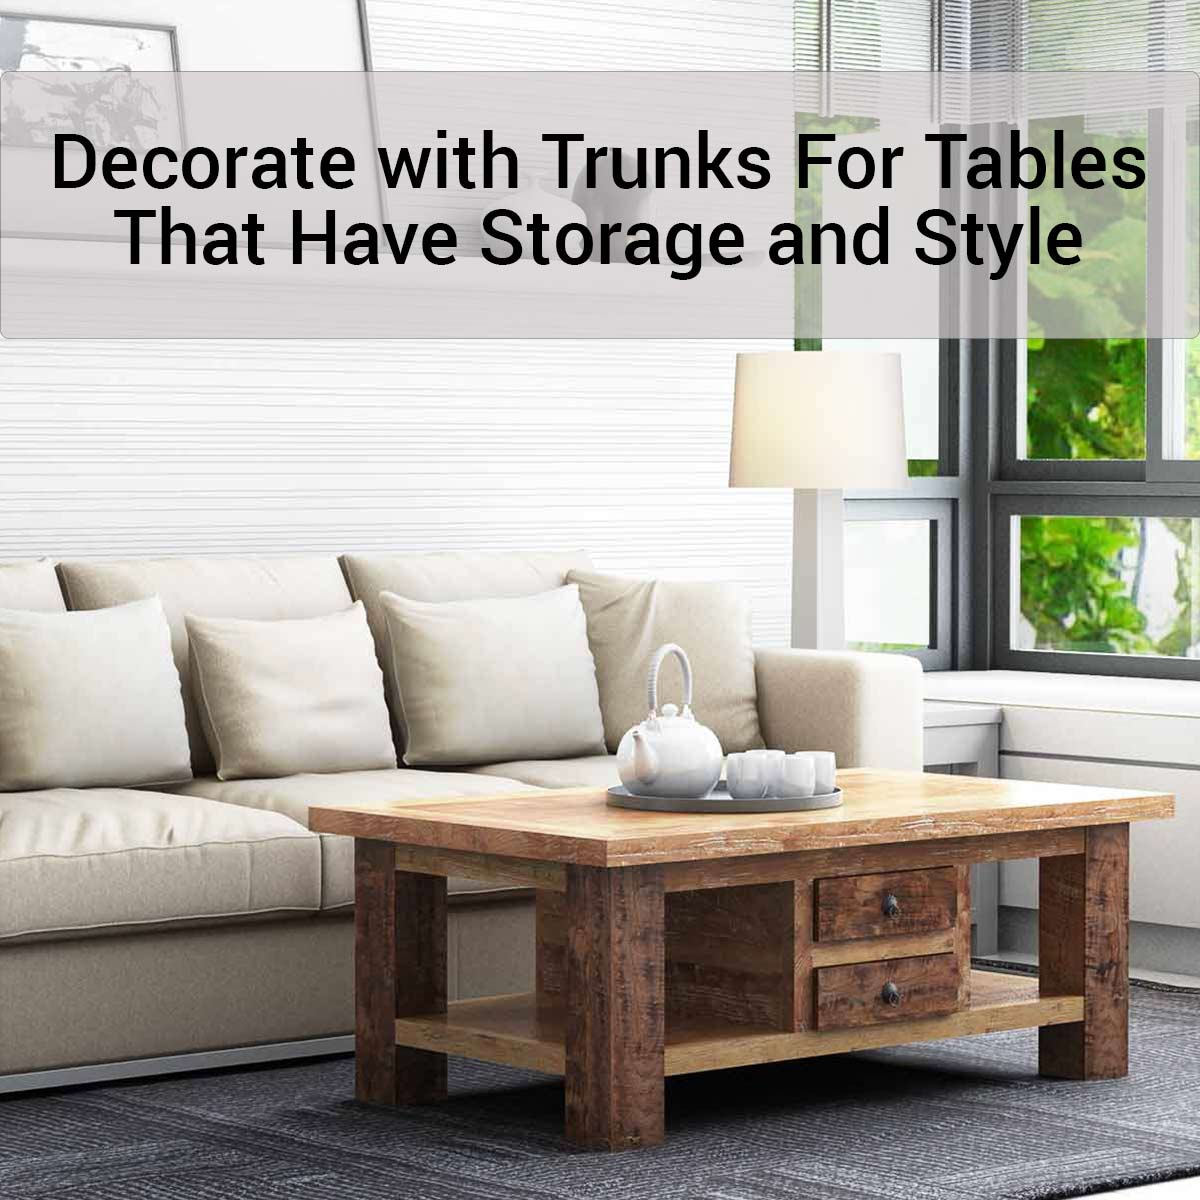 Decorate with Trunks For Tables That Have Storage and StyleSierra ...